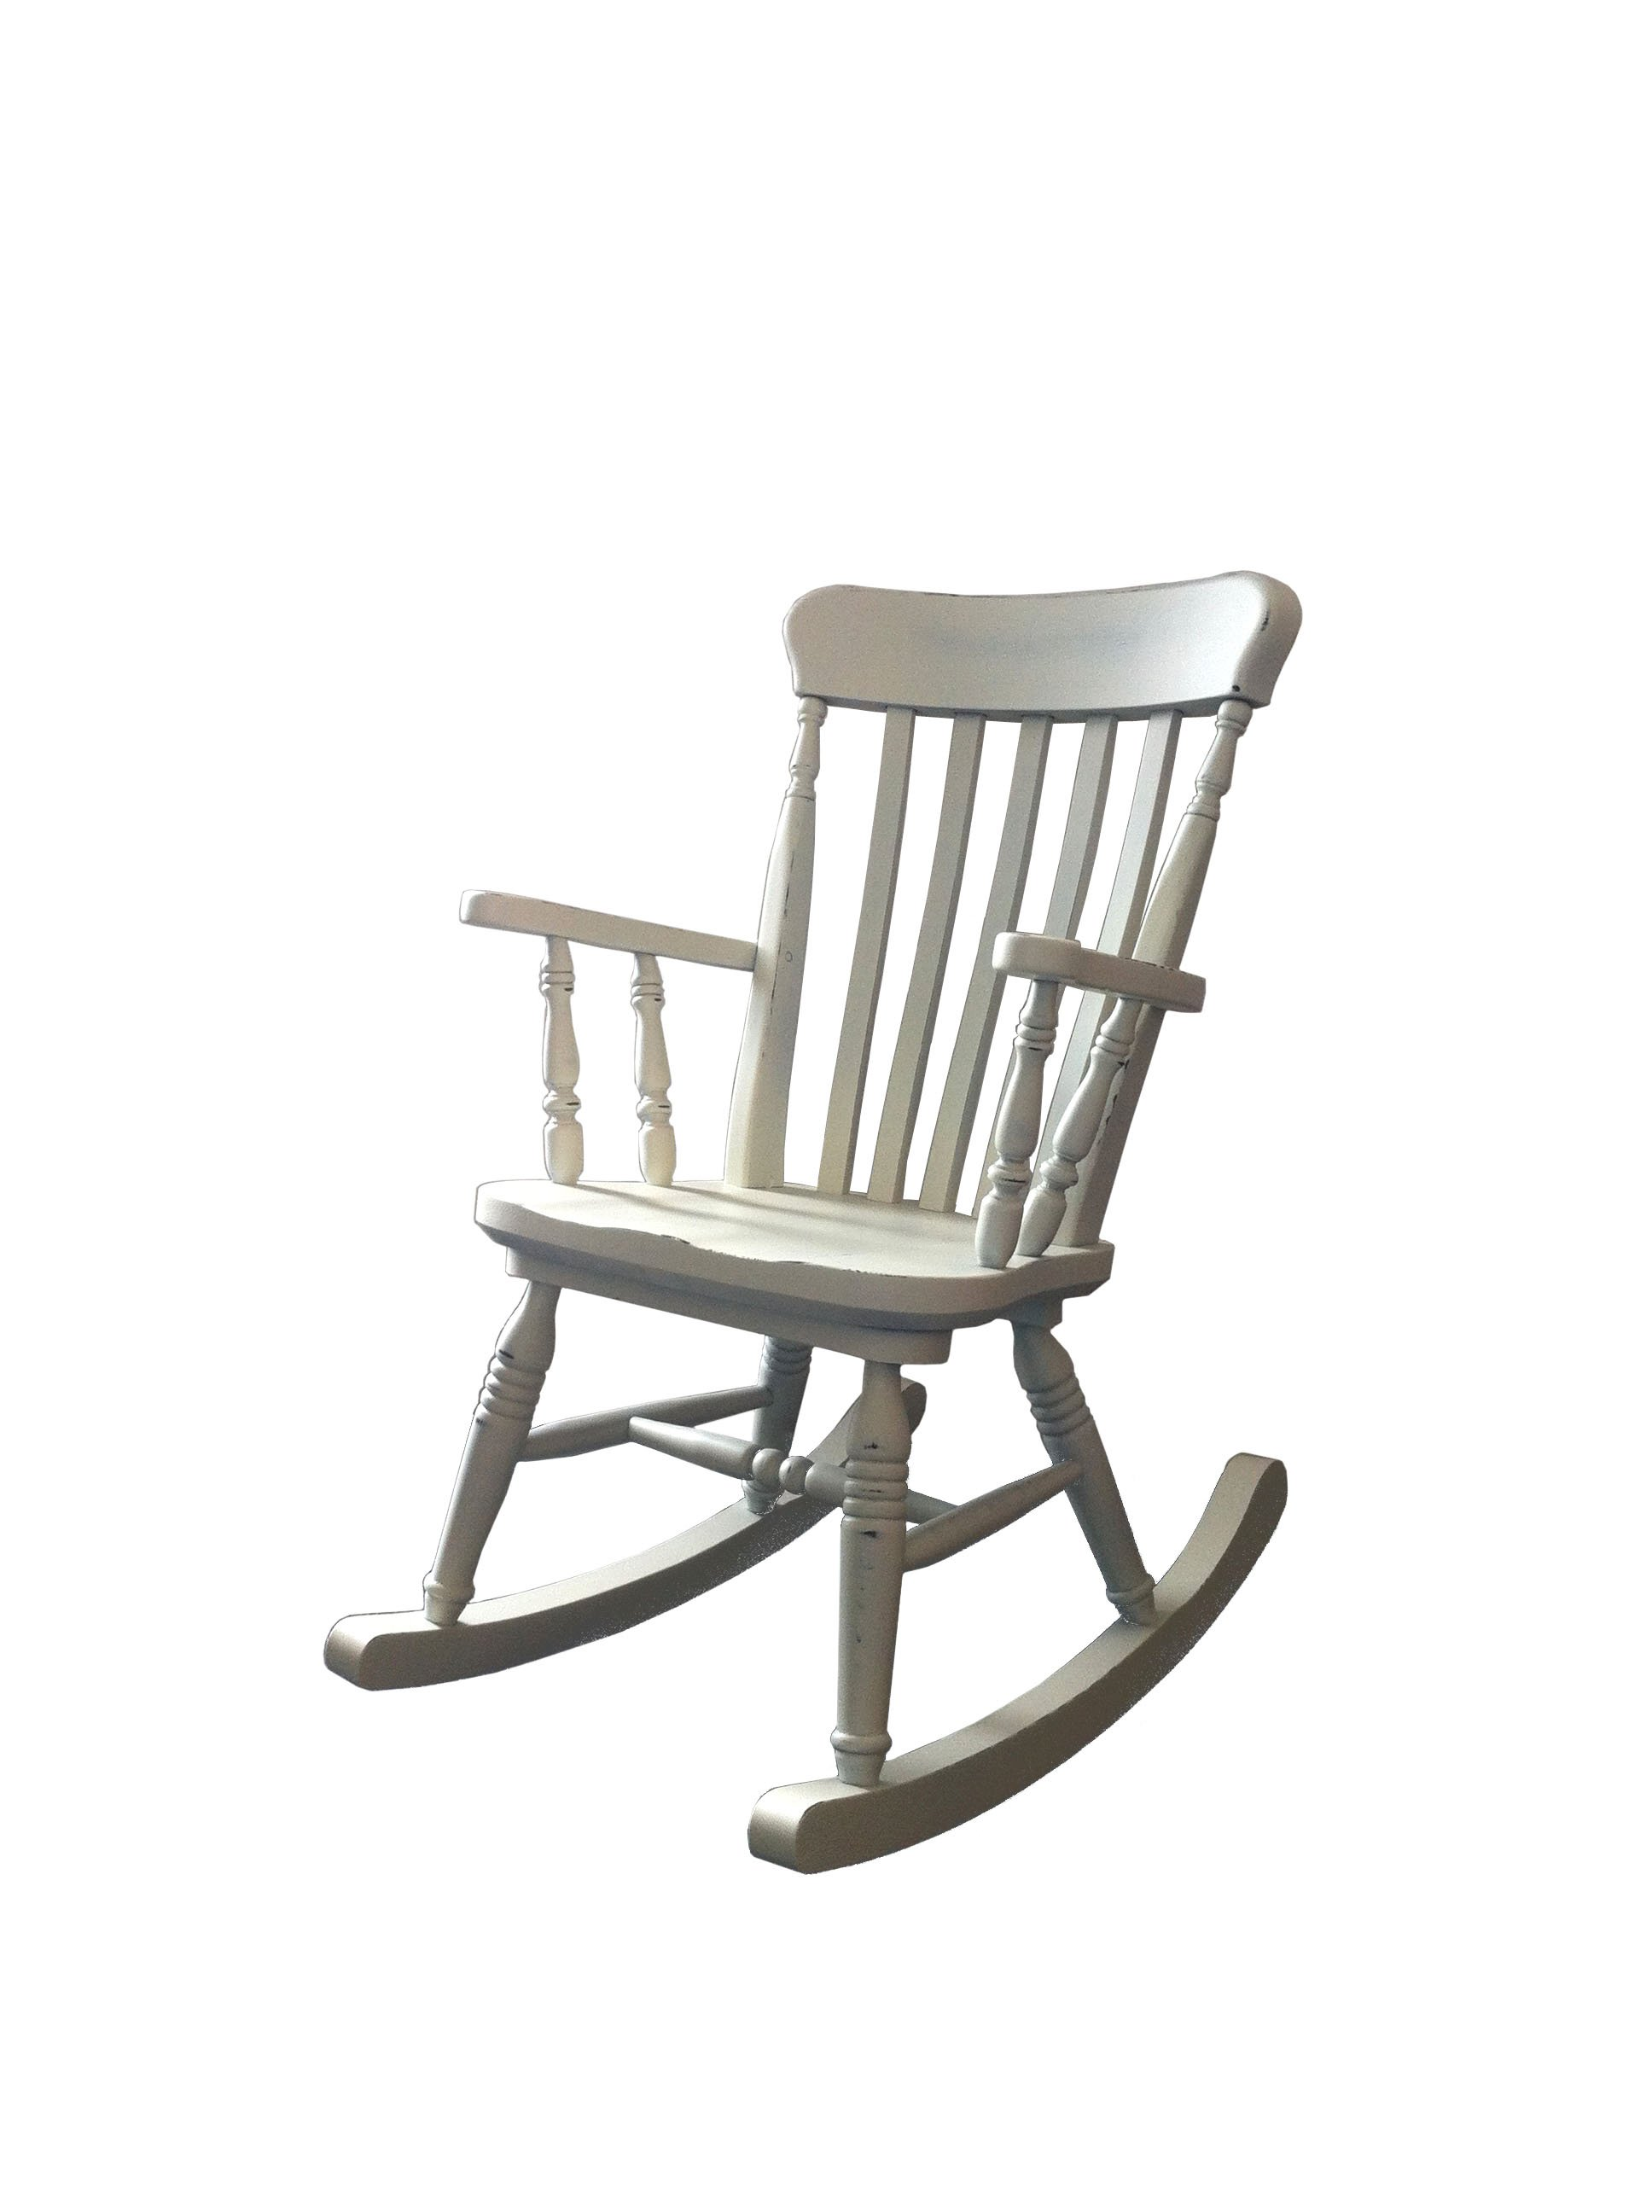 ... Rocking Rustica Wood Chair Rustic Country Kitchen Restaurant Community  Bar Mobililar TO DON 3 ...